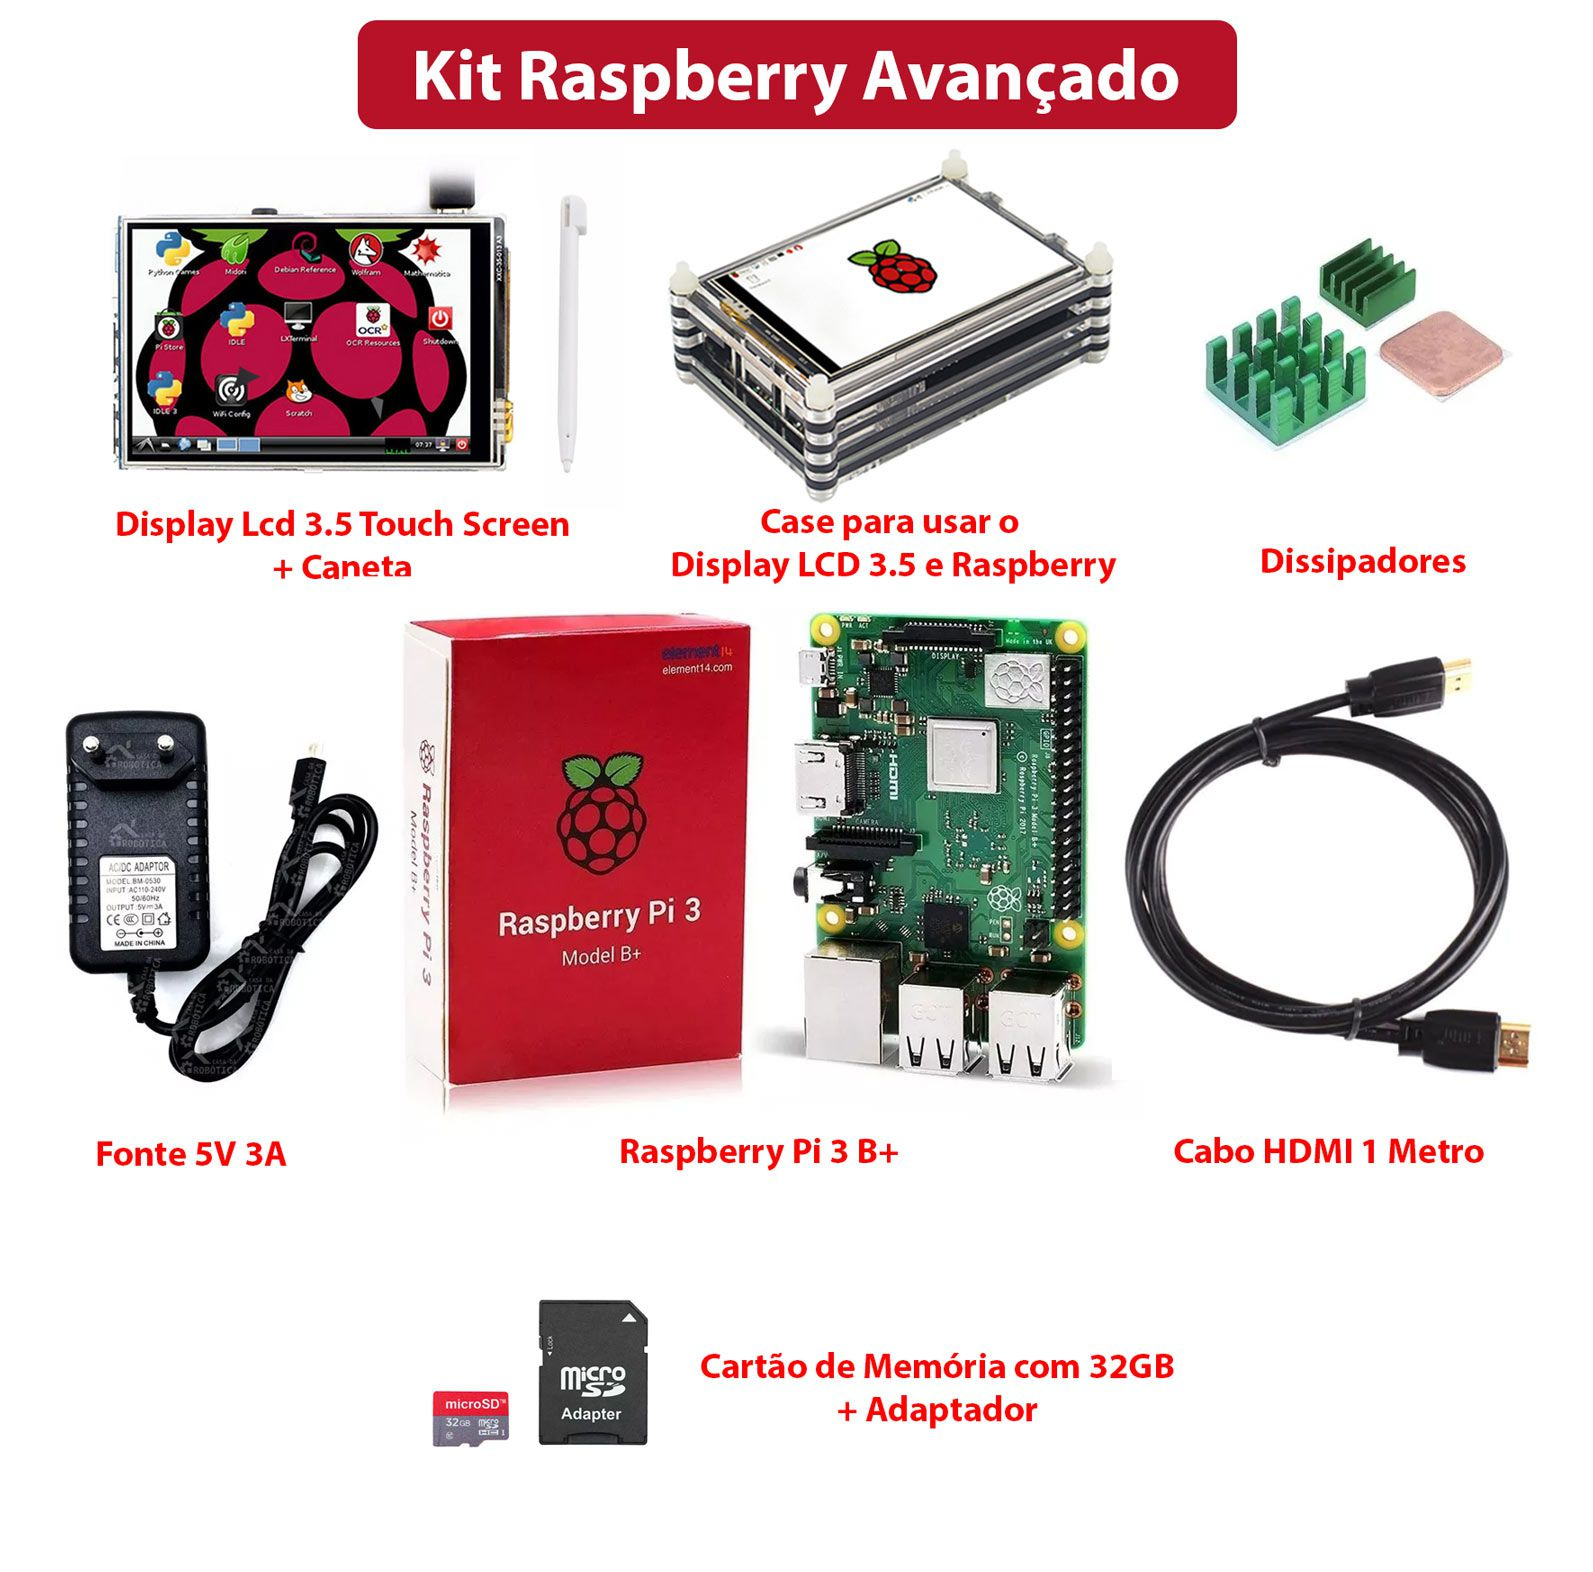 Kit Advanced: Raspberry Pi 3 B+ + Tela Touch 3.5 + Fonte + Cabo HDMI + Cartão 32GB + Dissipadores